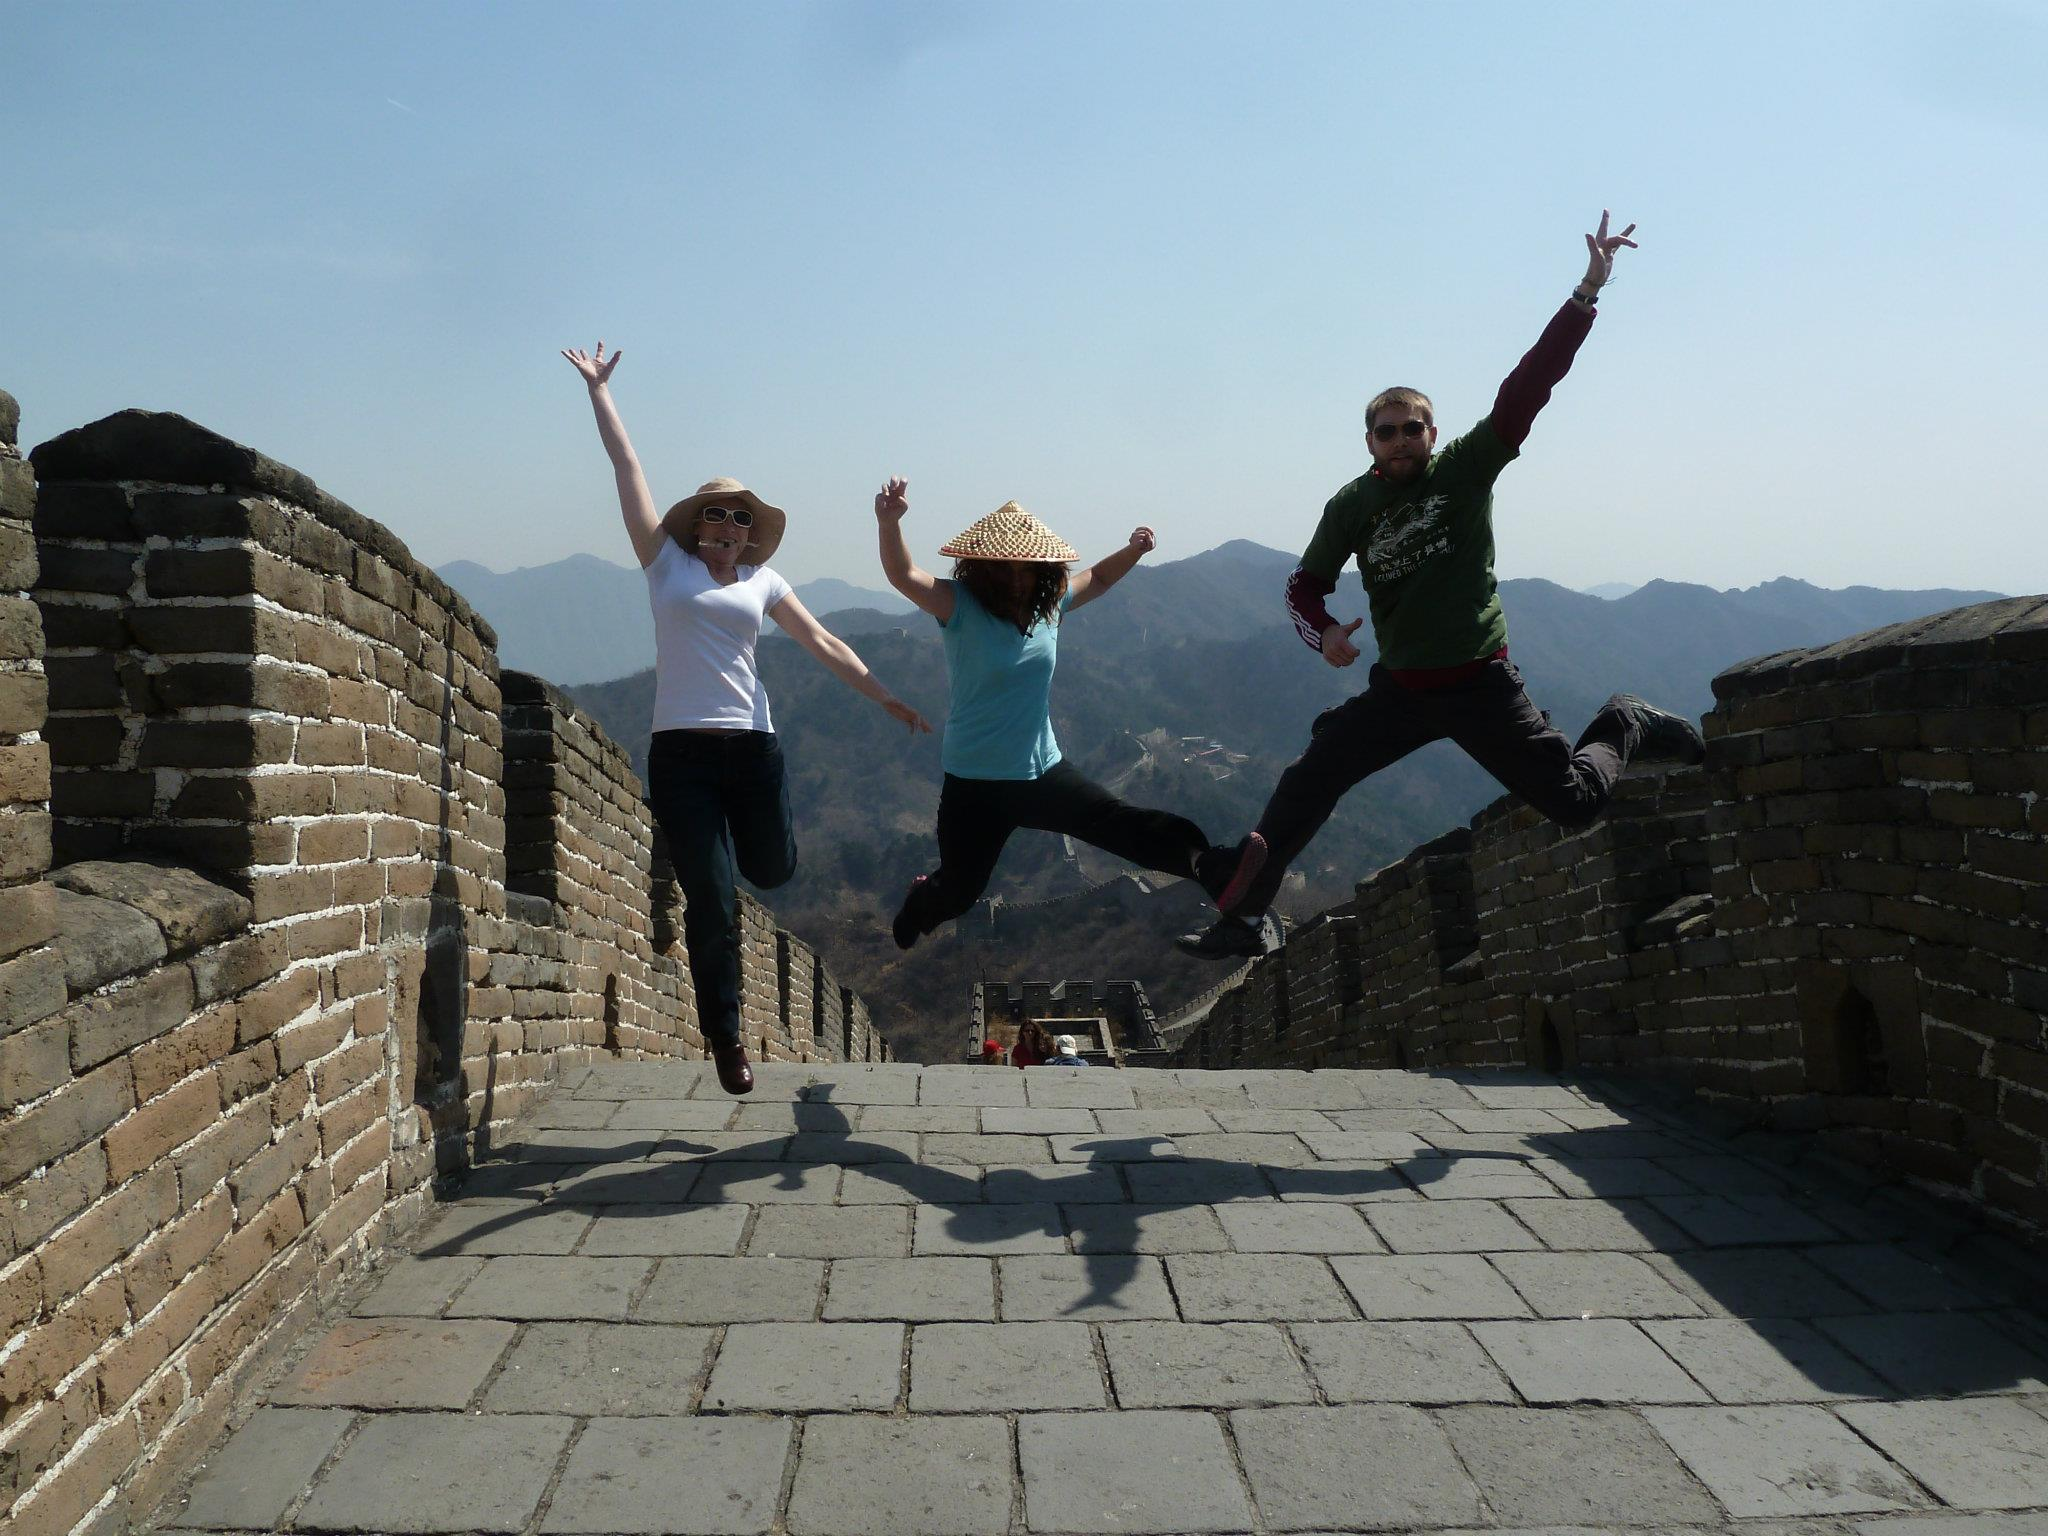 Me, My Cousin Anderson and his wife Liz, on the Great Wall